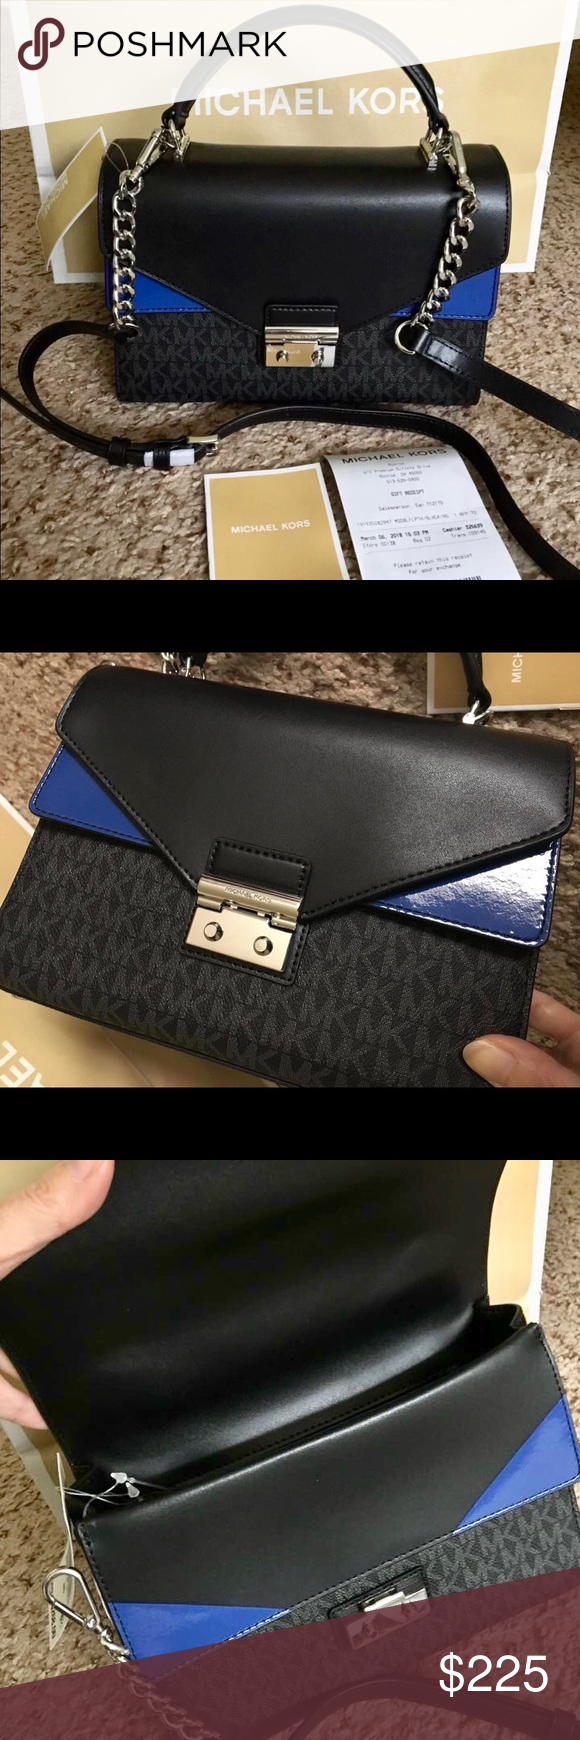 3c6cfc1c413e Michael Kors Sloan Logo Medium Double Flap Satchel Michael Kors Sloan Logo  & Leather Medium Double Flap Top Handle Satchel (Black/Electric Blue / Logo  ...